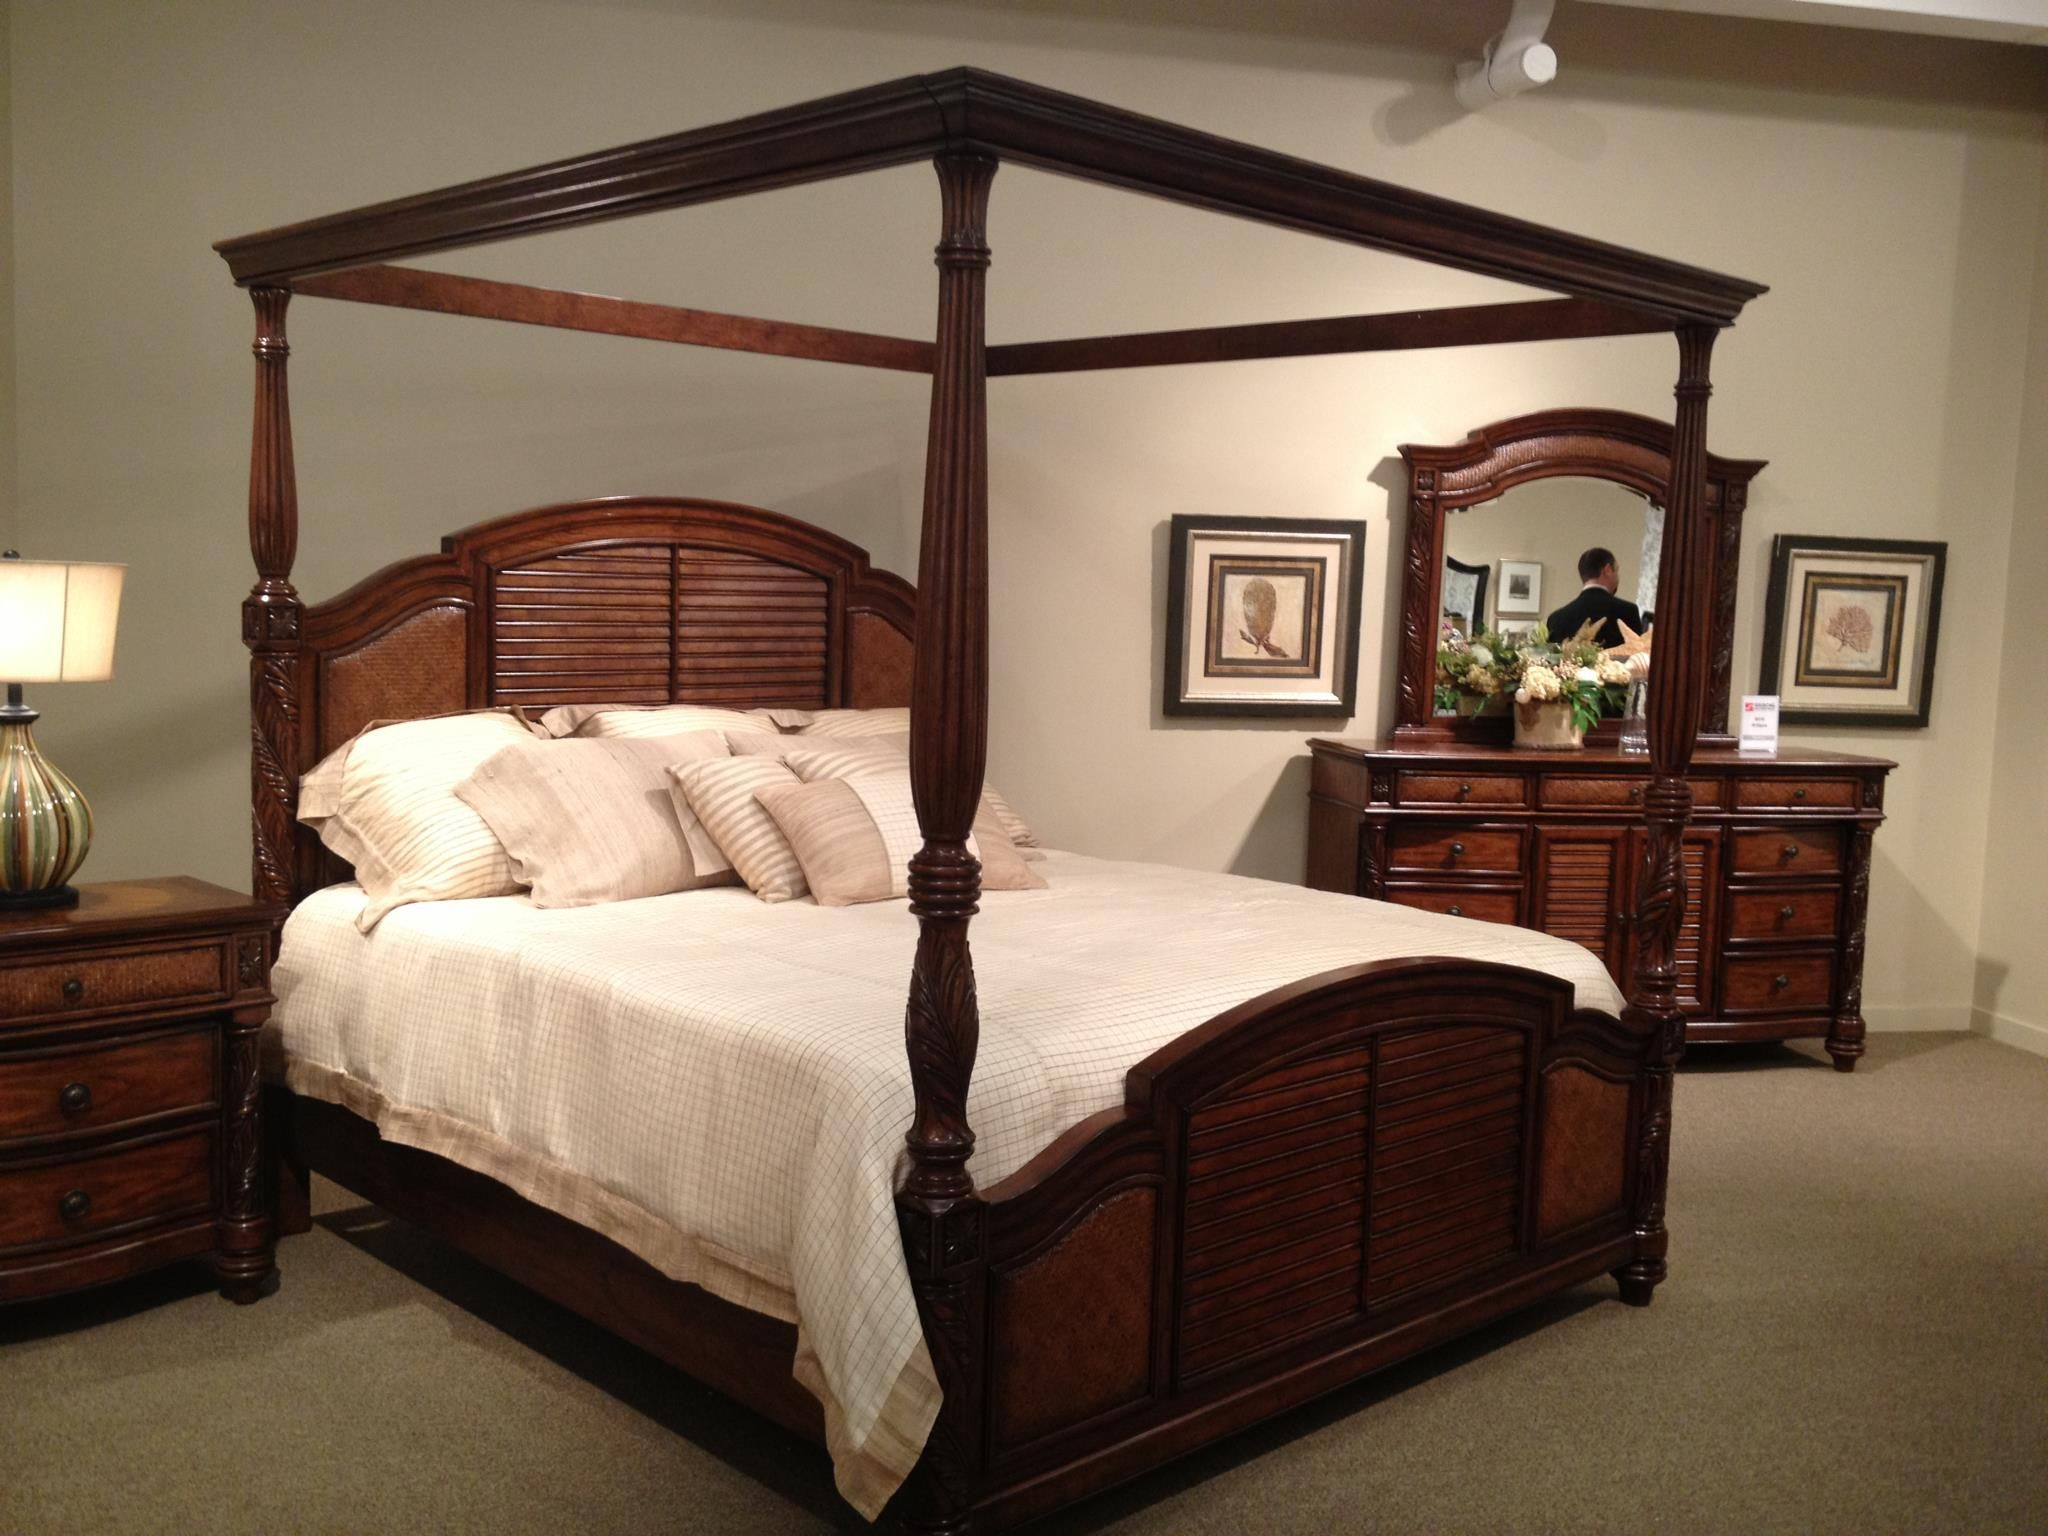 Best Do You Like Canopy Beds Or Beds With Posts Perfect For A 400 x 300